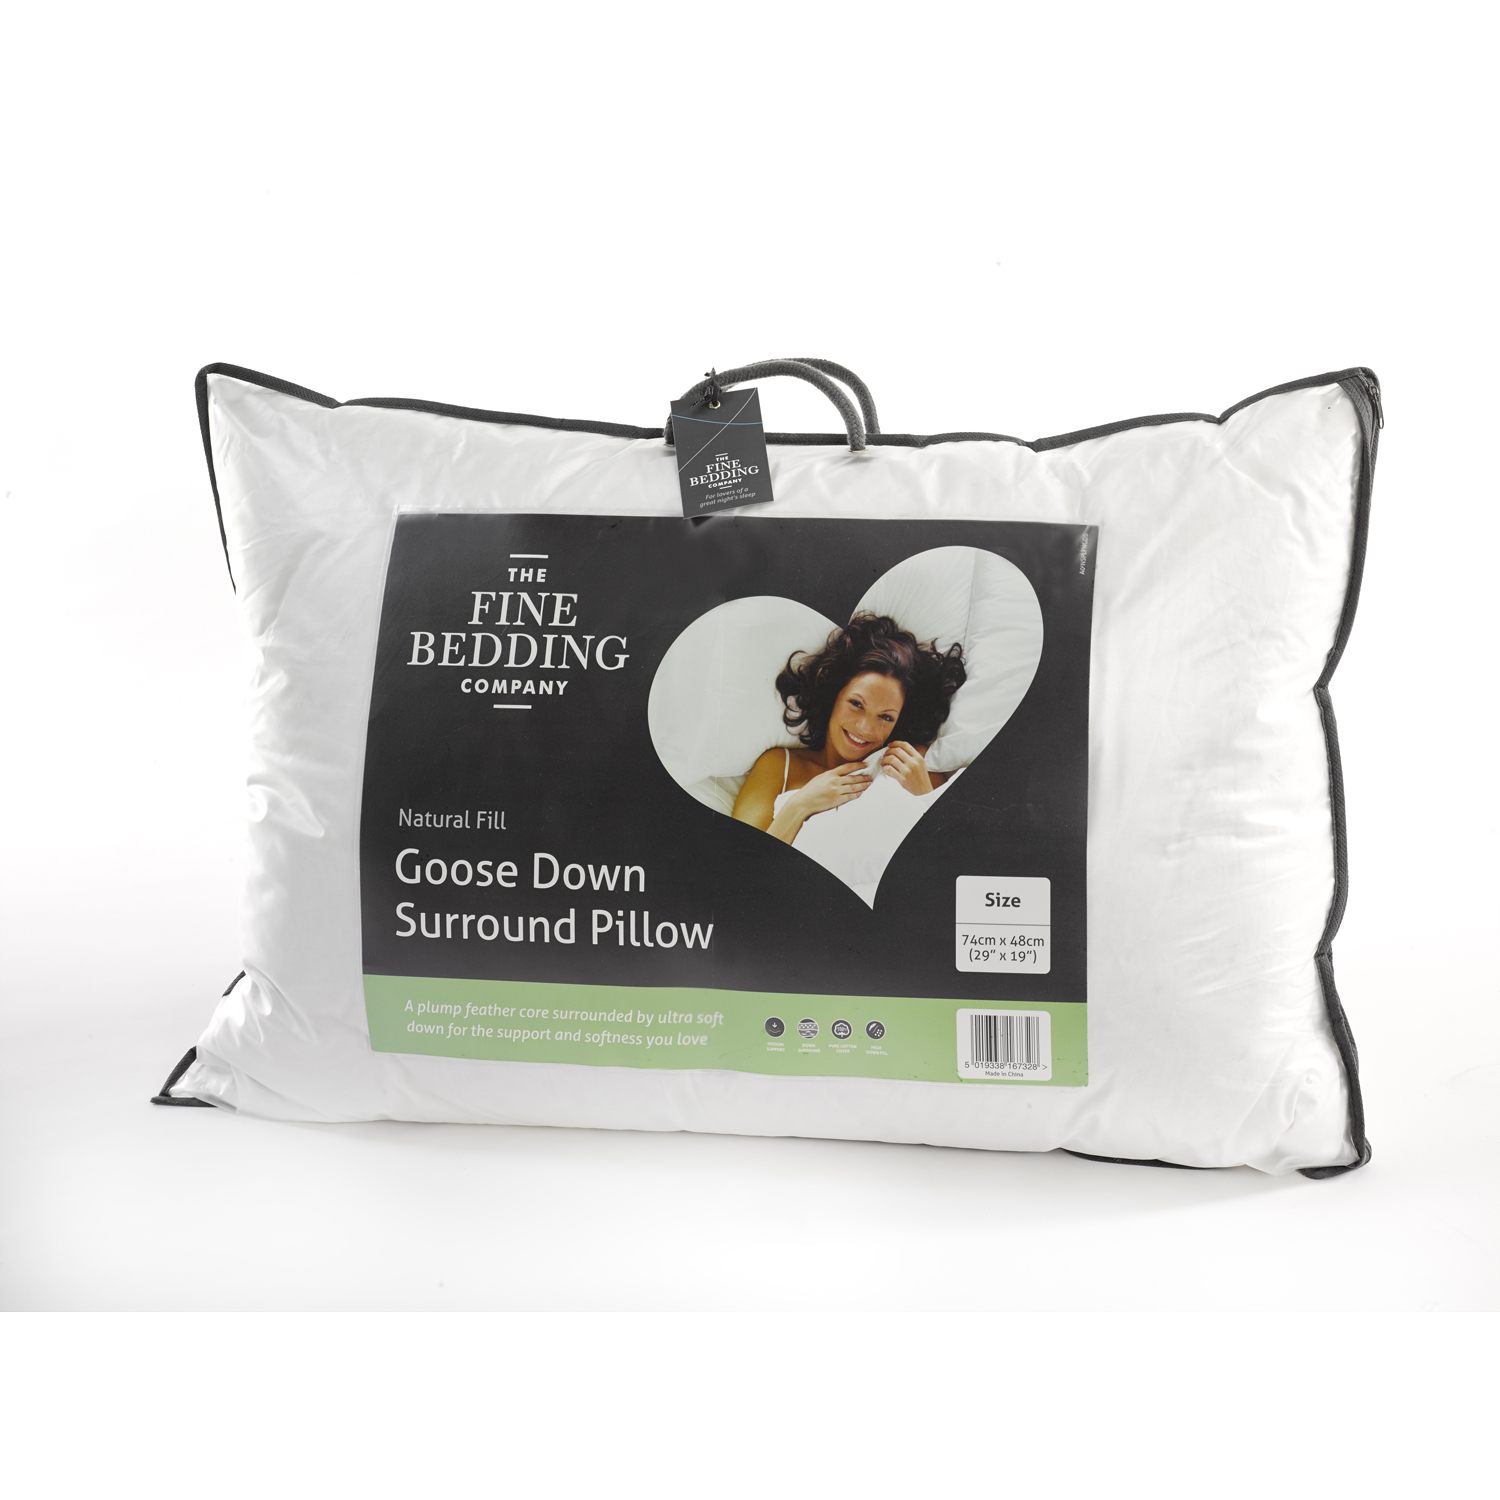 Image of Fine Bedding Company Goose Down Surround Pillow